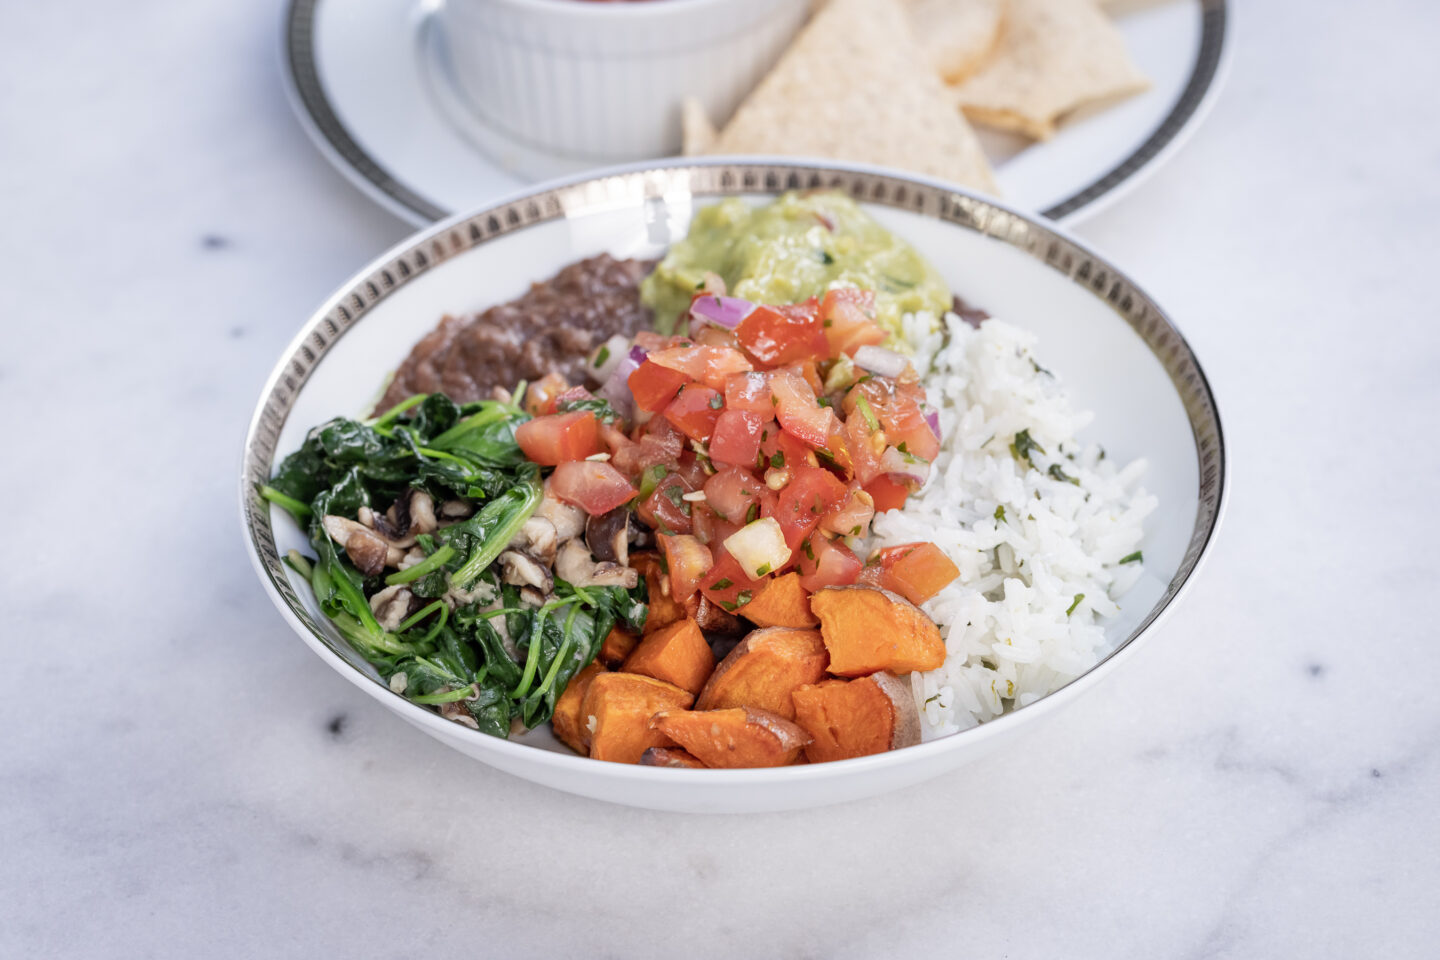 Sweet Potato, Black Bean and Cilantro Lime Rice Burrito Bowl with Sauteed Greens and Mushrooms, Pico de Gallo and Guacamole served with Siete Grain Free Chips and Salsa, Healthy Recipes, Vegan Recipes, Mexican Buddha Bowl, Gluten Free Recipes   Burrito Bowl by popular Dallas lifestyle blog, Pretty Little Shoppers: image of a sweet potato, black bean and cilantro lime rice burrito bowl next to a plate of chips and salsa.